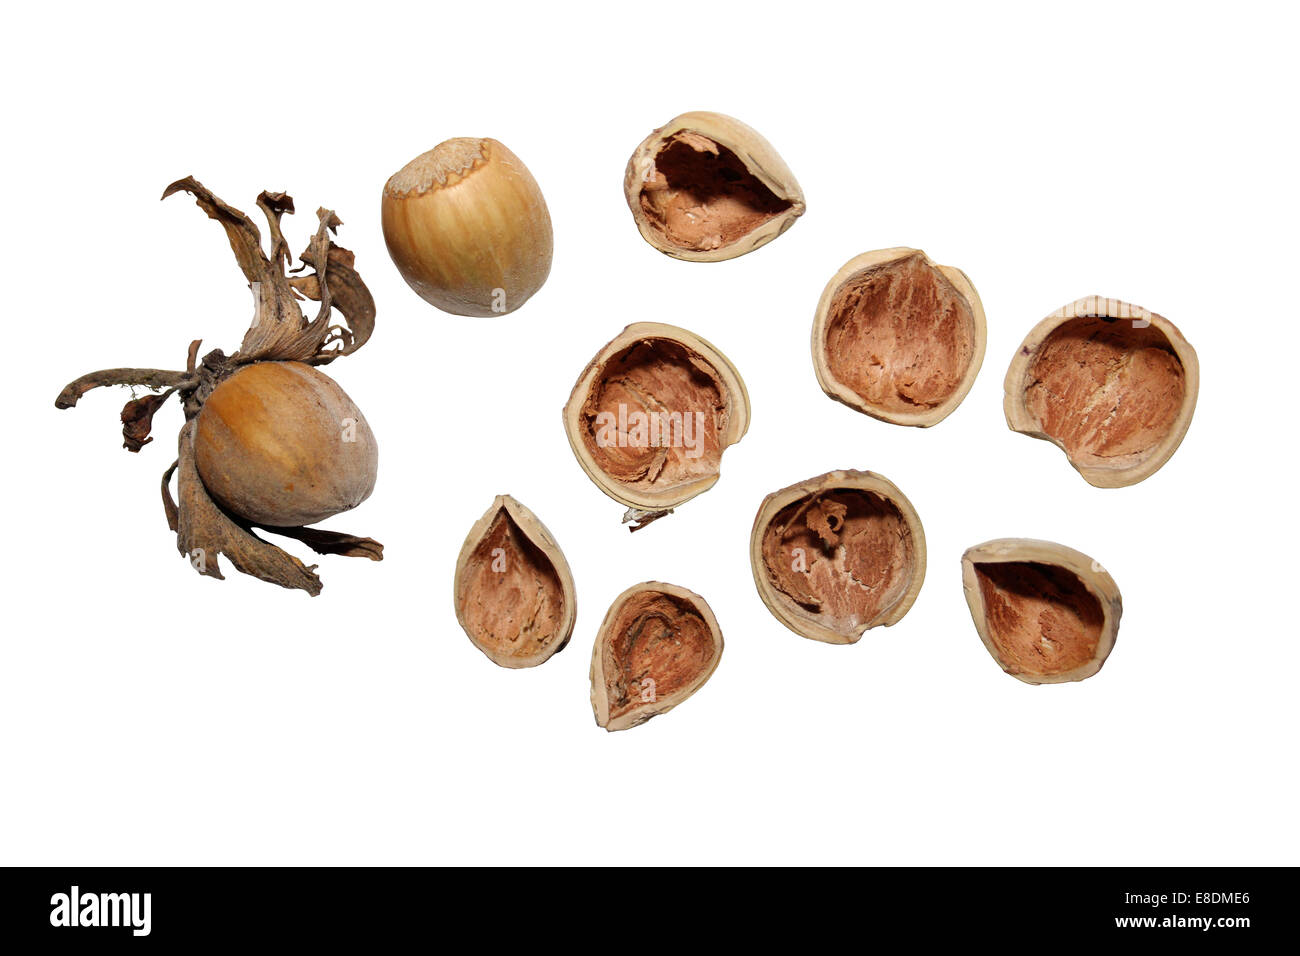 Whole Hazelnuts And Those Nibbled By Grey Squirrels Sciurus carolinensis - Stock Image